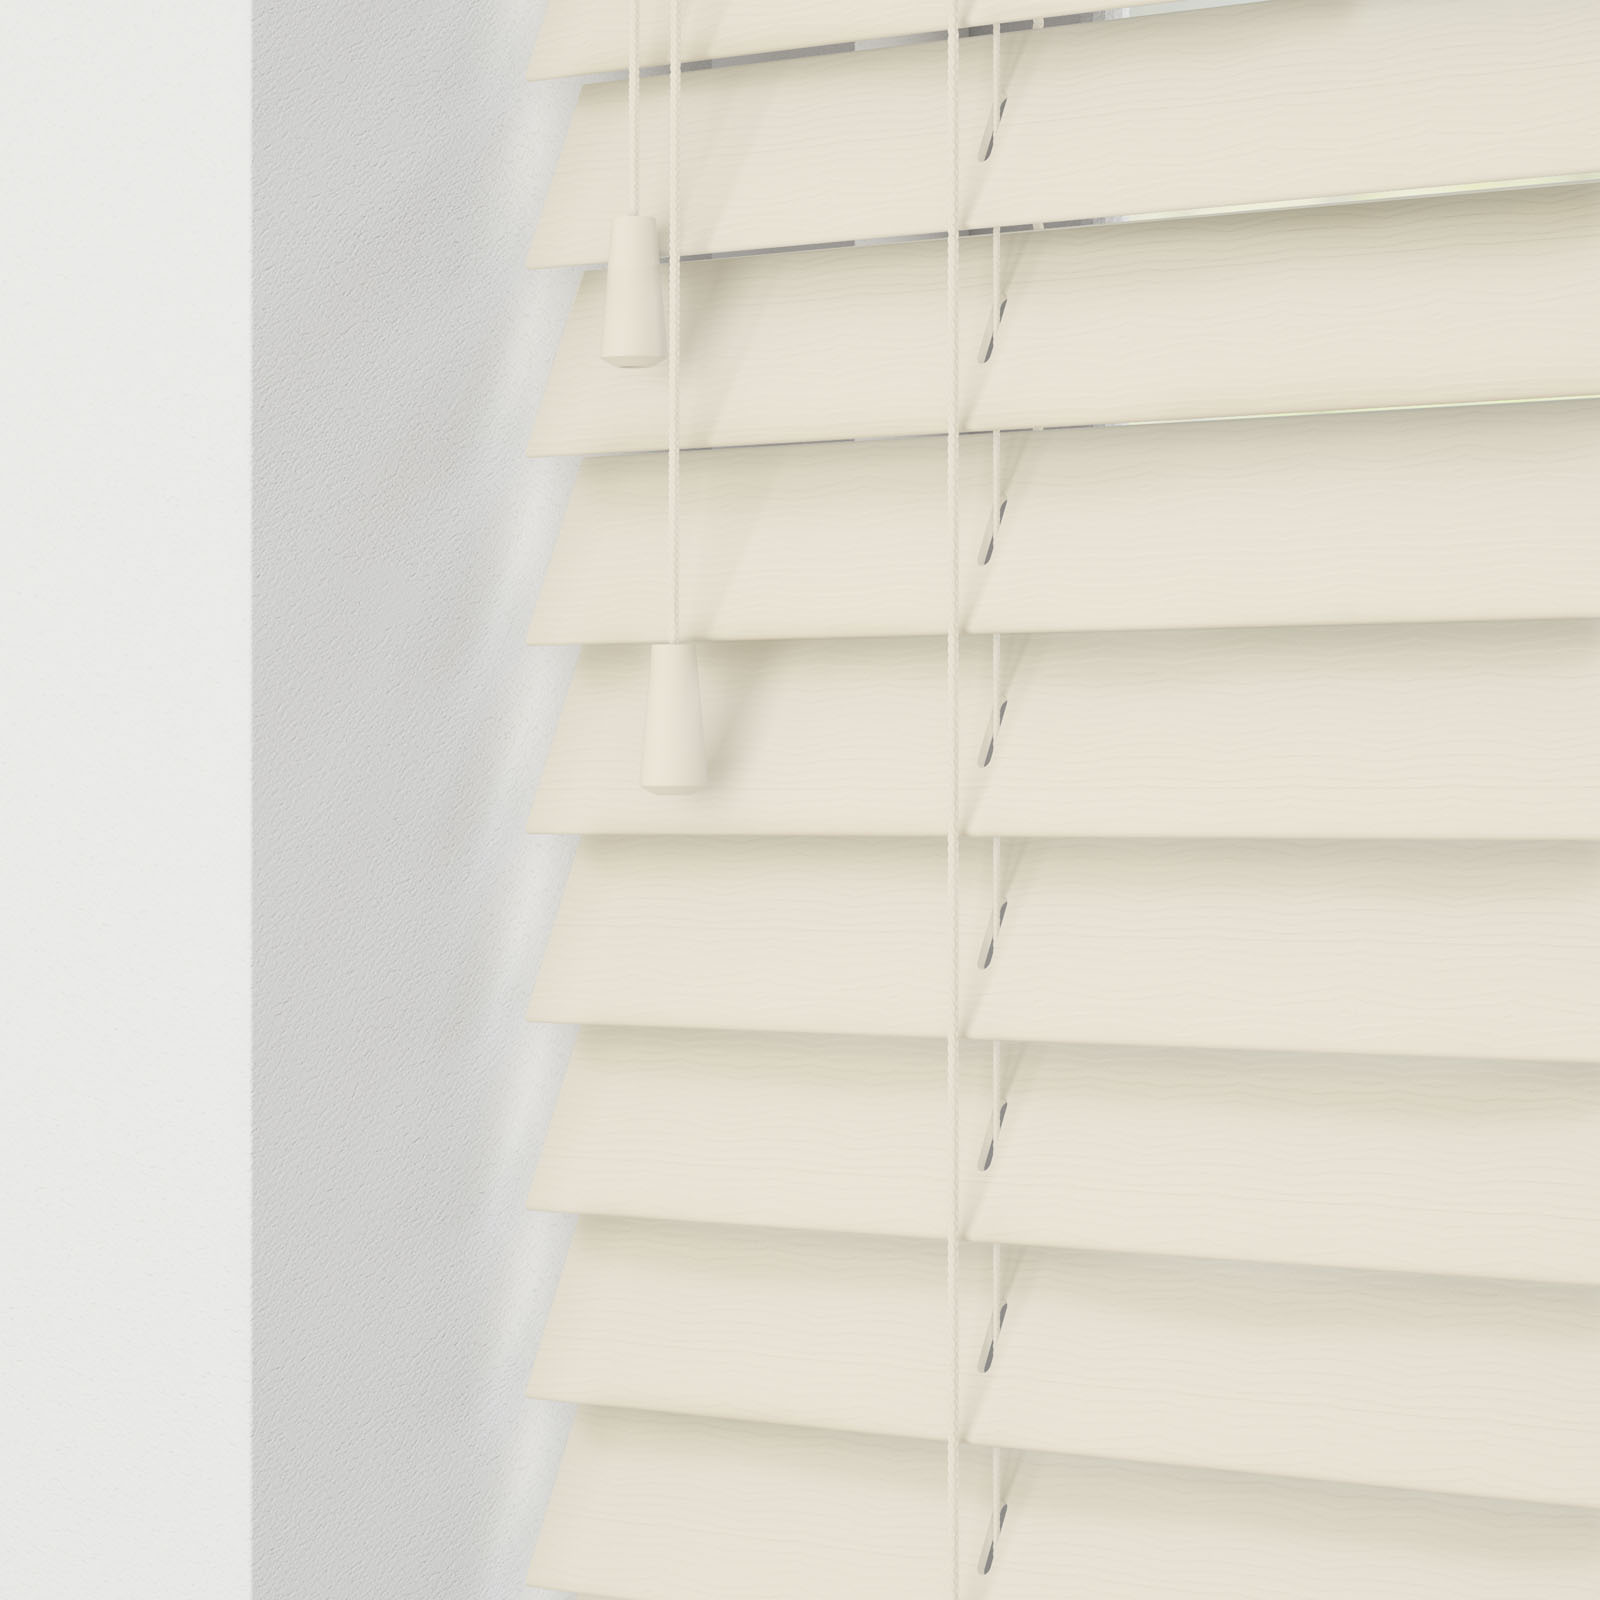 Mirage Cream Faux Wood Venetian Blinds With Cords And Wood Grain Effect Quality Window Blinds By The Online Blind Company